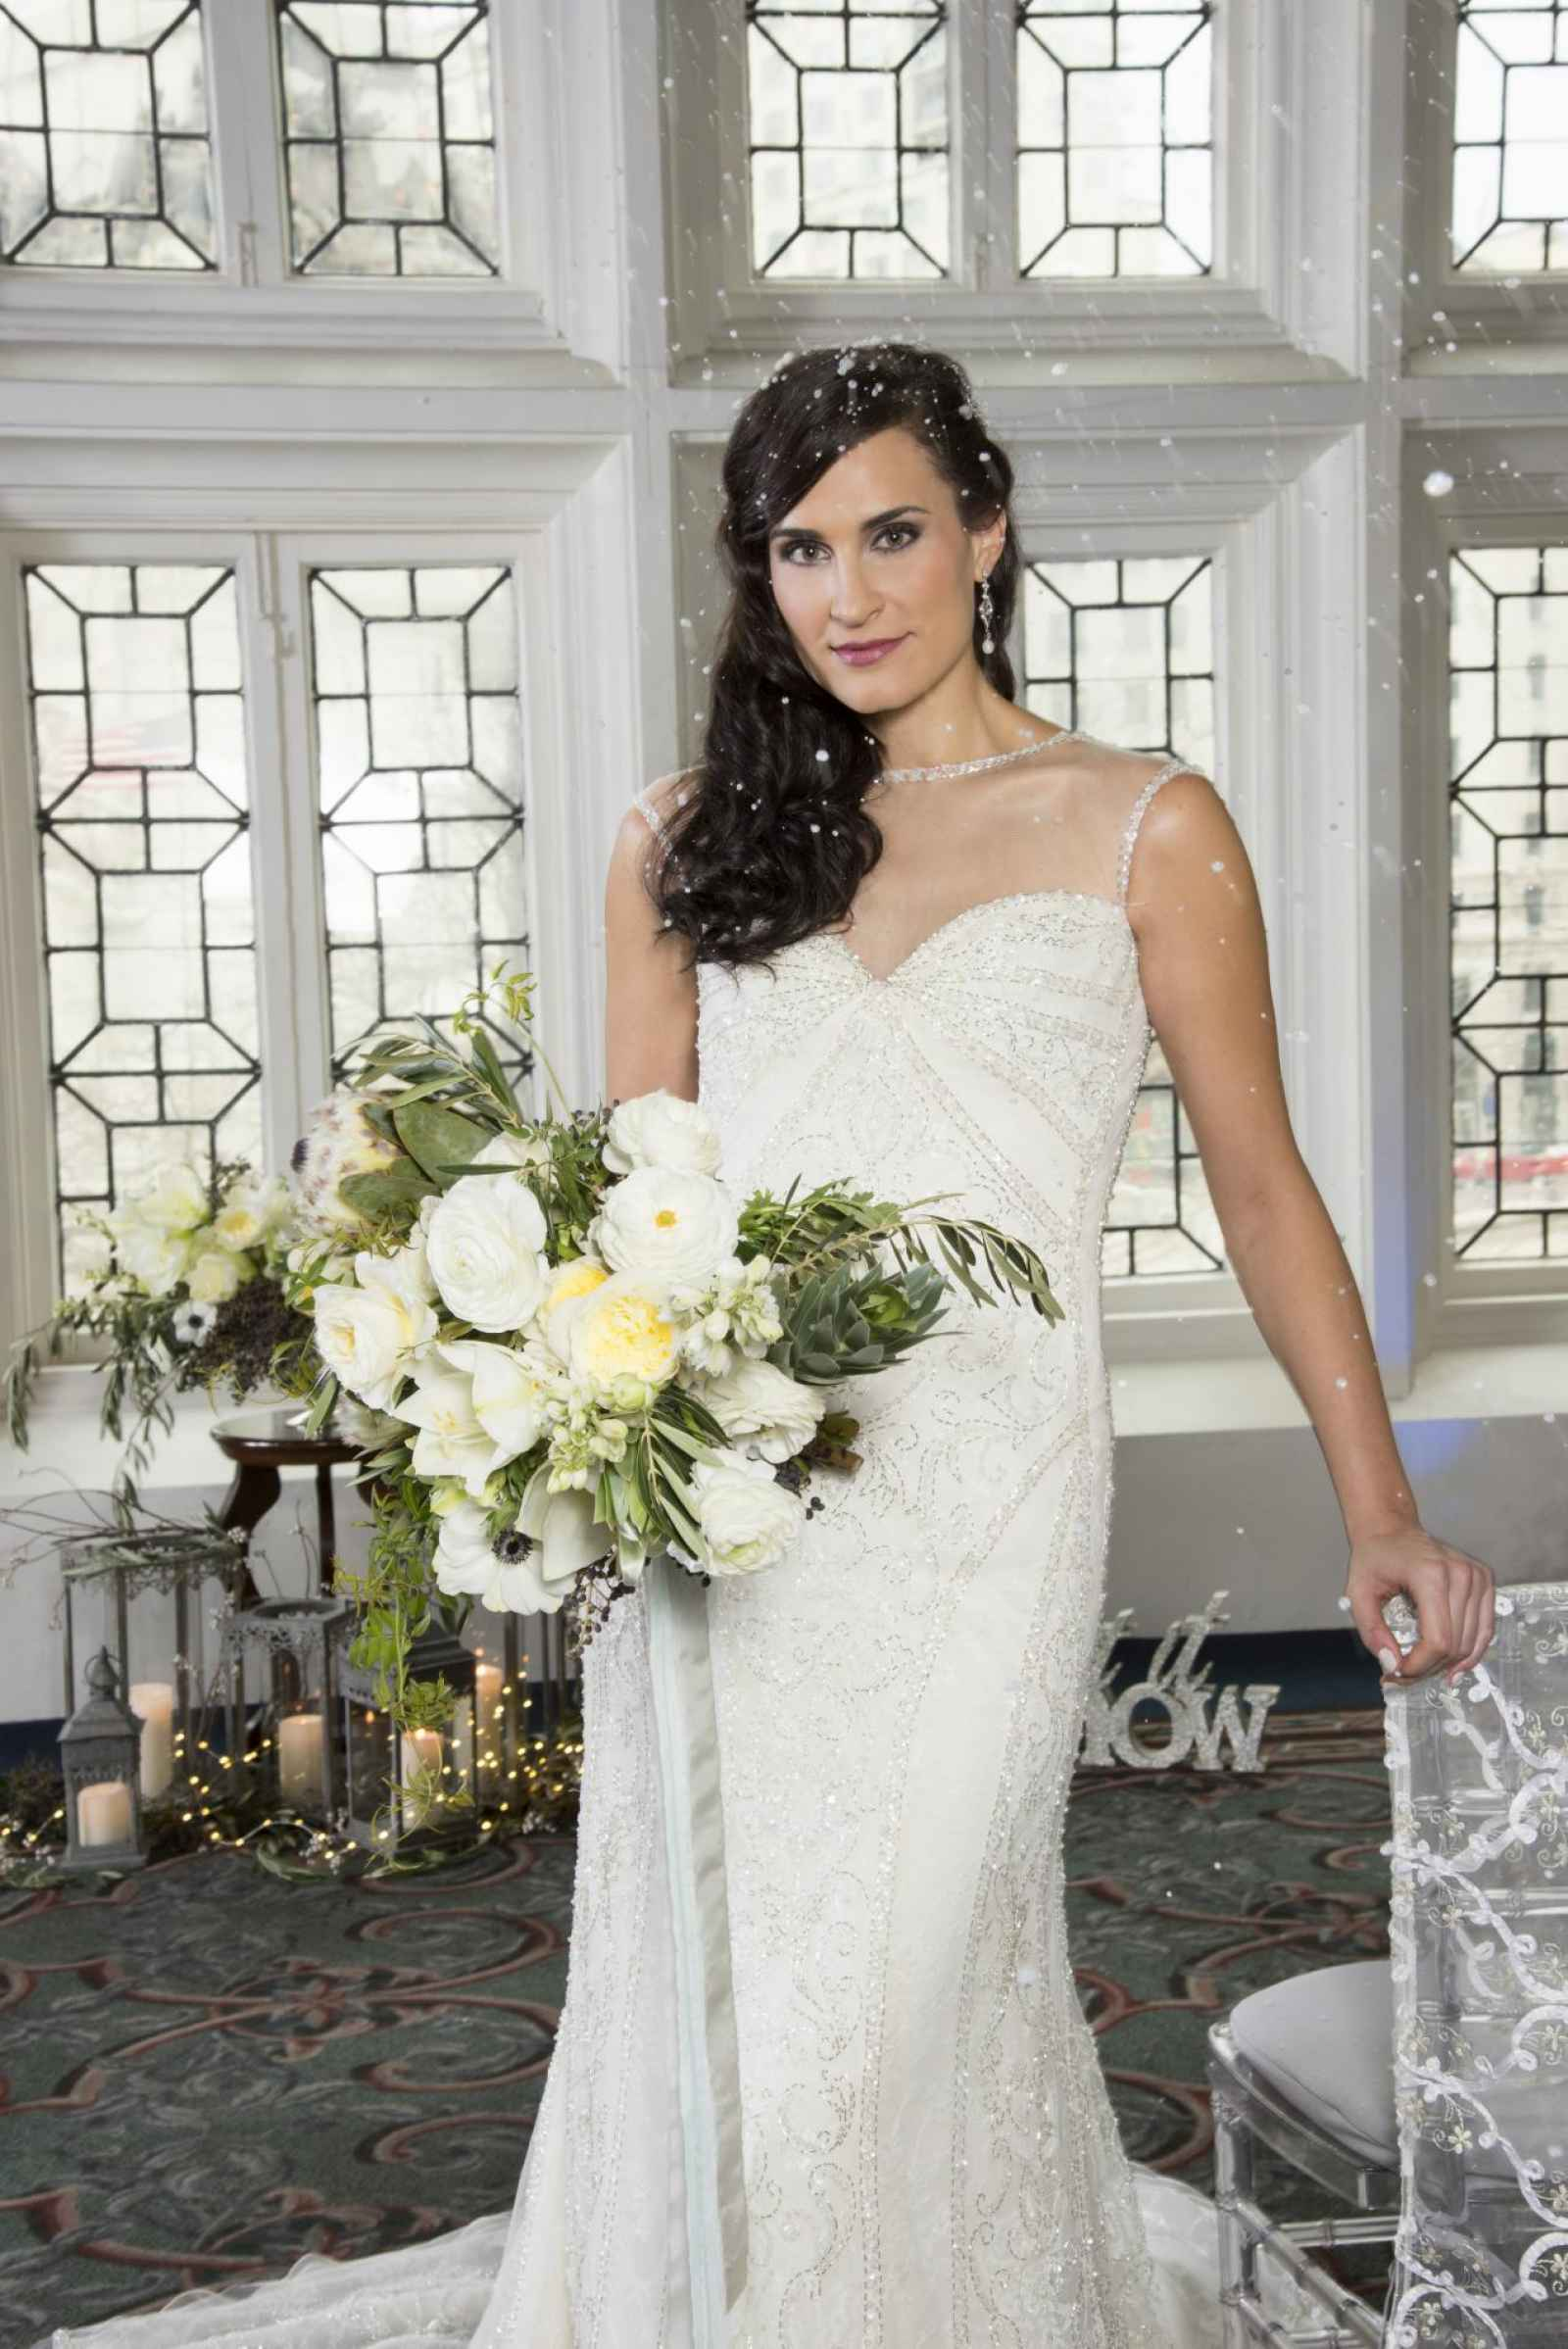 Dress diaries pt 1 the multi dress bride weddingday magazine in recent years weve seen a growing trend in brides purchasing and wearing more than one gown on their wedding day high profile brides including carrie junglespirit Images